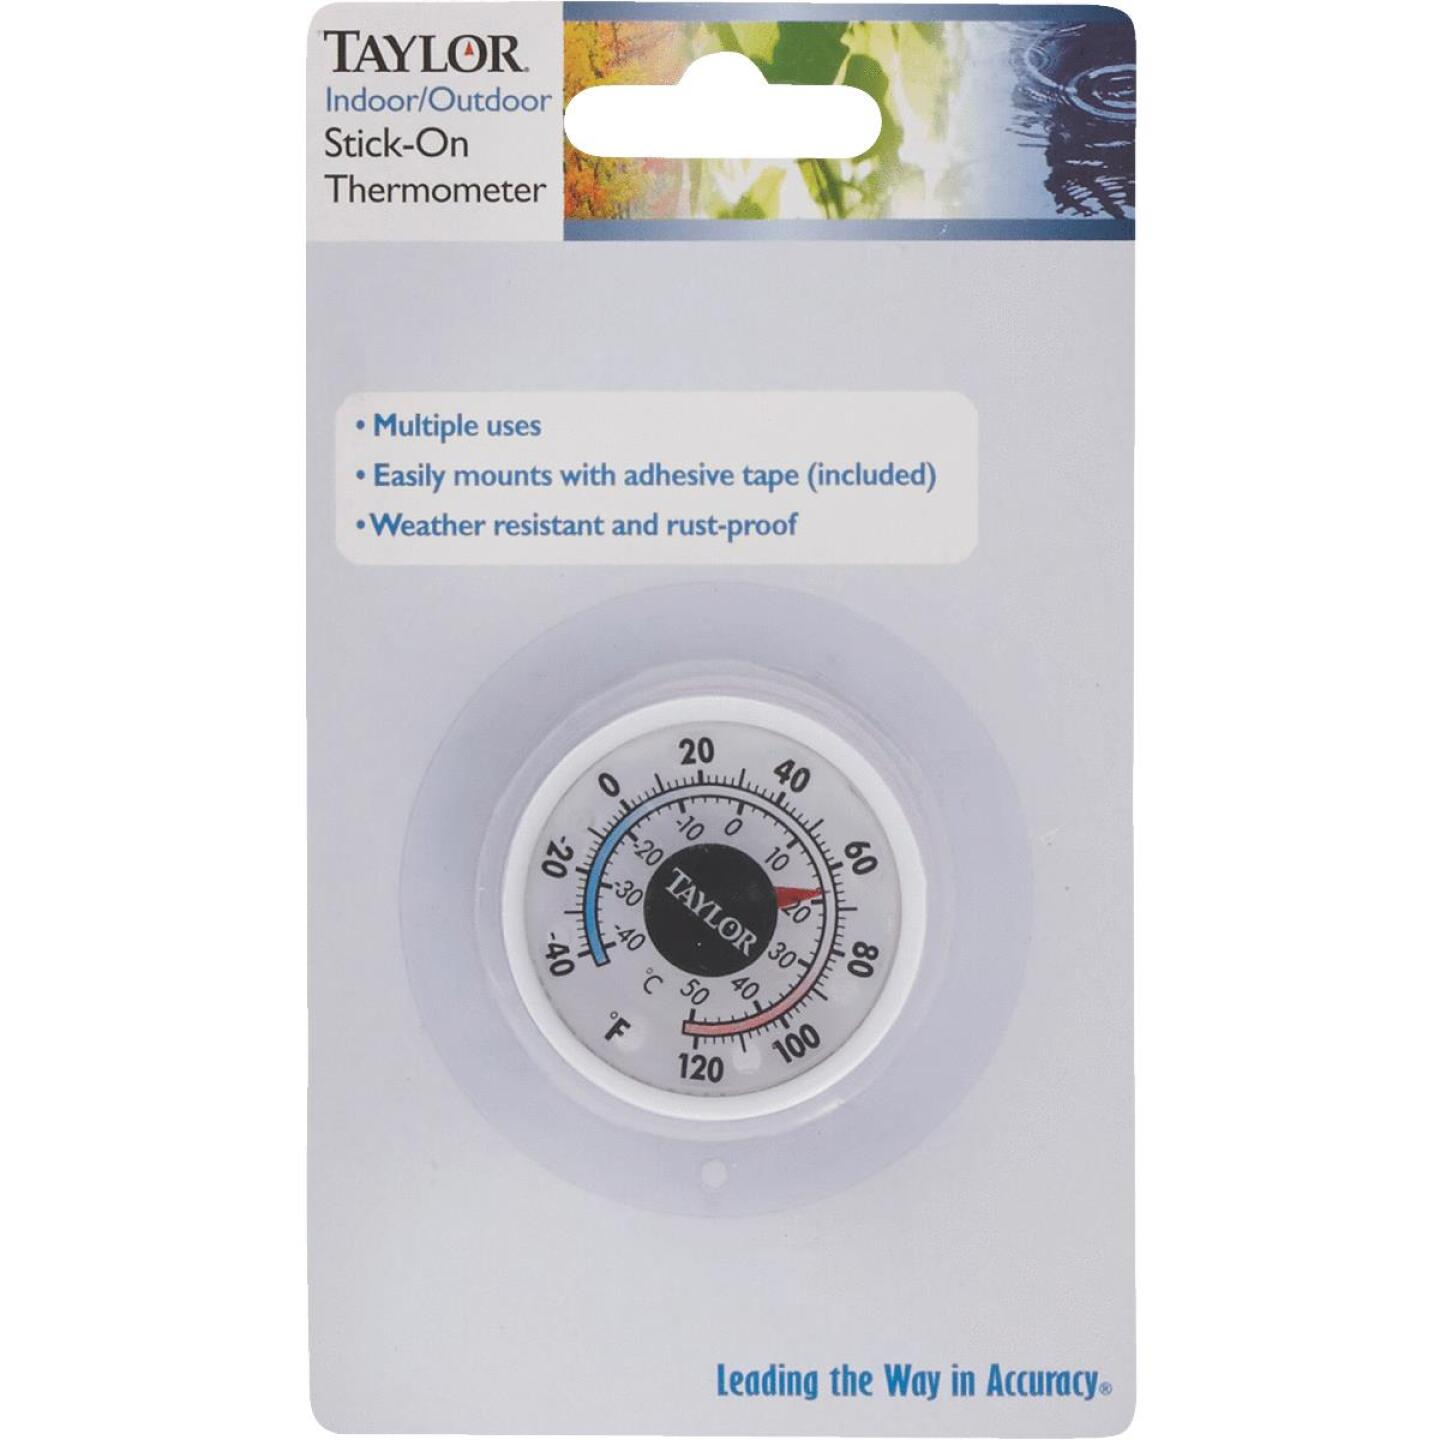 Taylor 1-3/4 In. Dia. Stick-on Thermometer Image 2